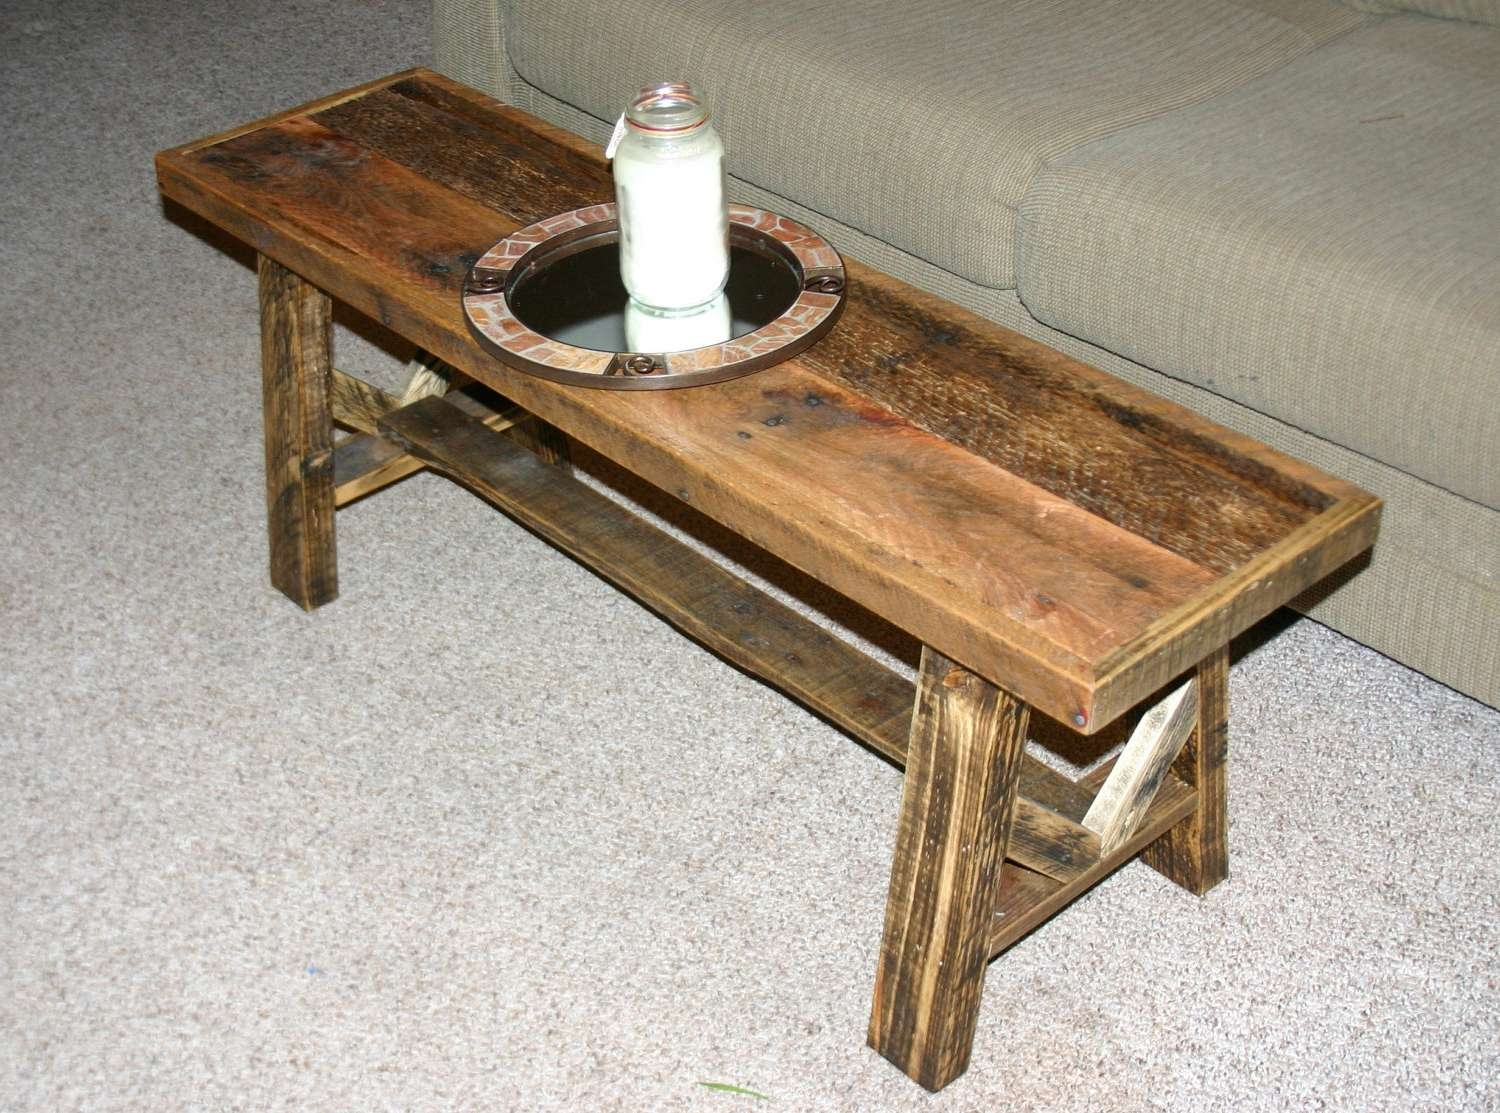 Widely Used Thin Coffee Tables Regarding Coffee Tables : Industrial Square Coffee Table Narrow With Storage (View 2 of 20)